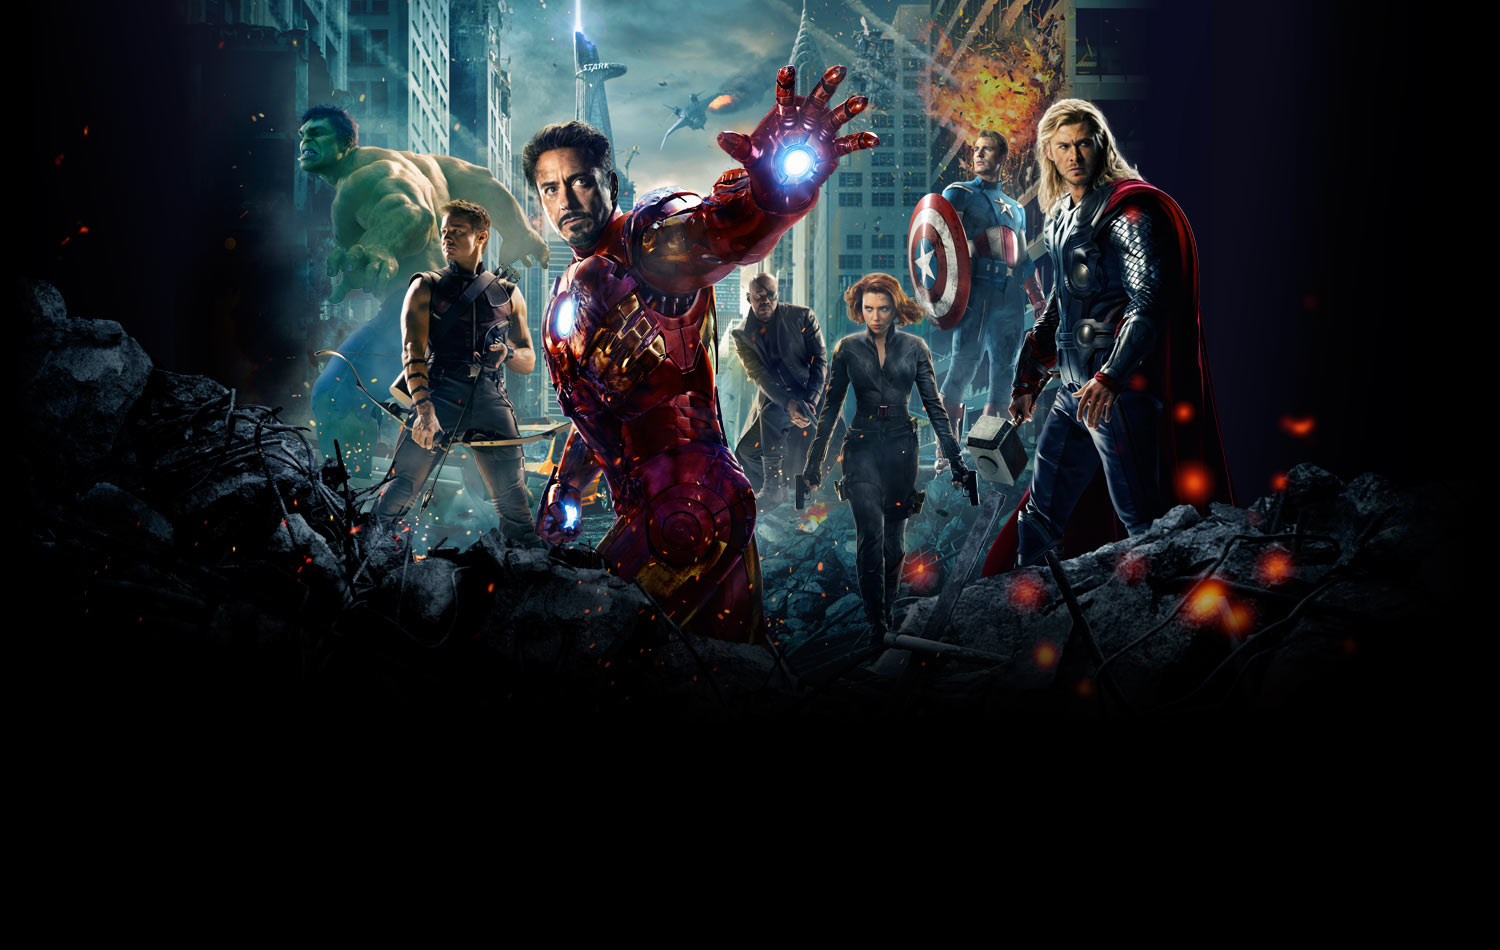 by LEAGUE OF FICTION The Avengers Wallpaper trailer 2 HD release 1500x950